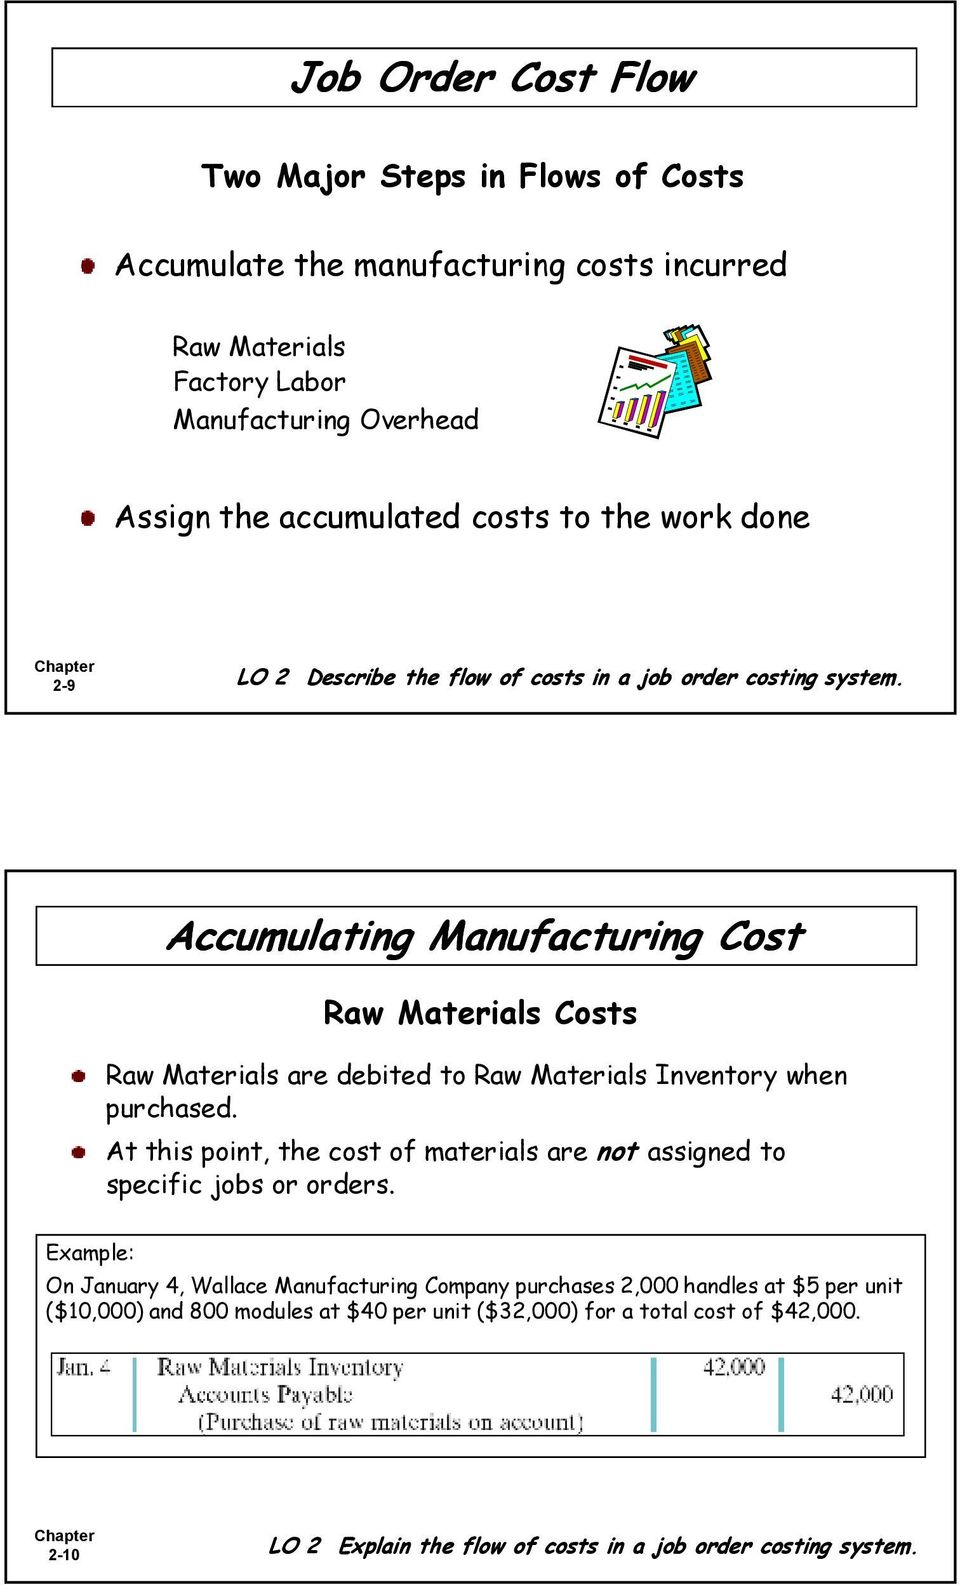 historical cost accounting 2 essay The most commonly encountered convention is the historical cost convention this requires transactions to be recorded at the price ruling at the time, and for assets to be valued at their original cost.